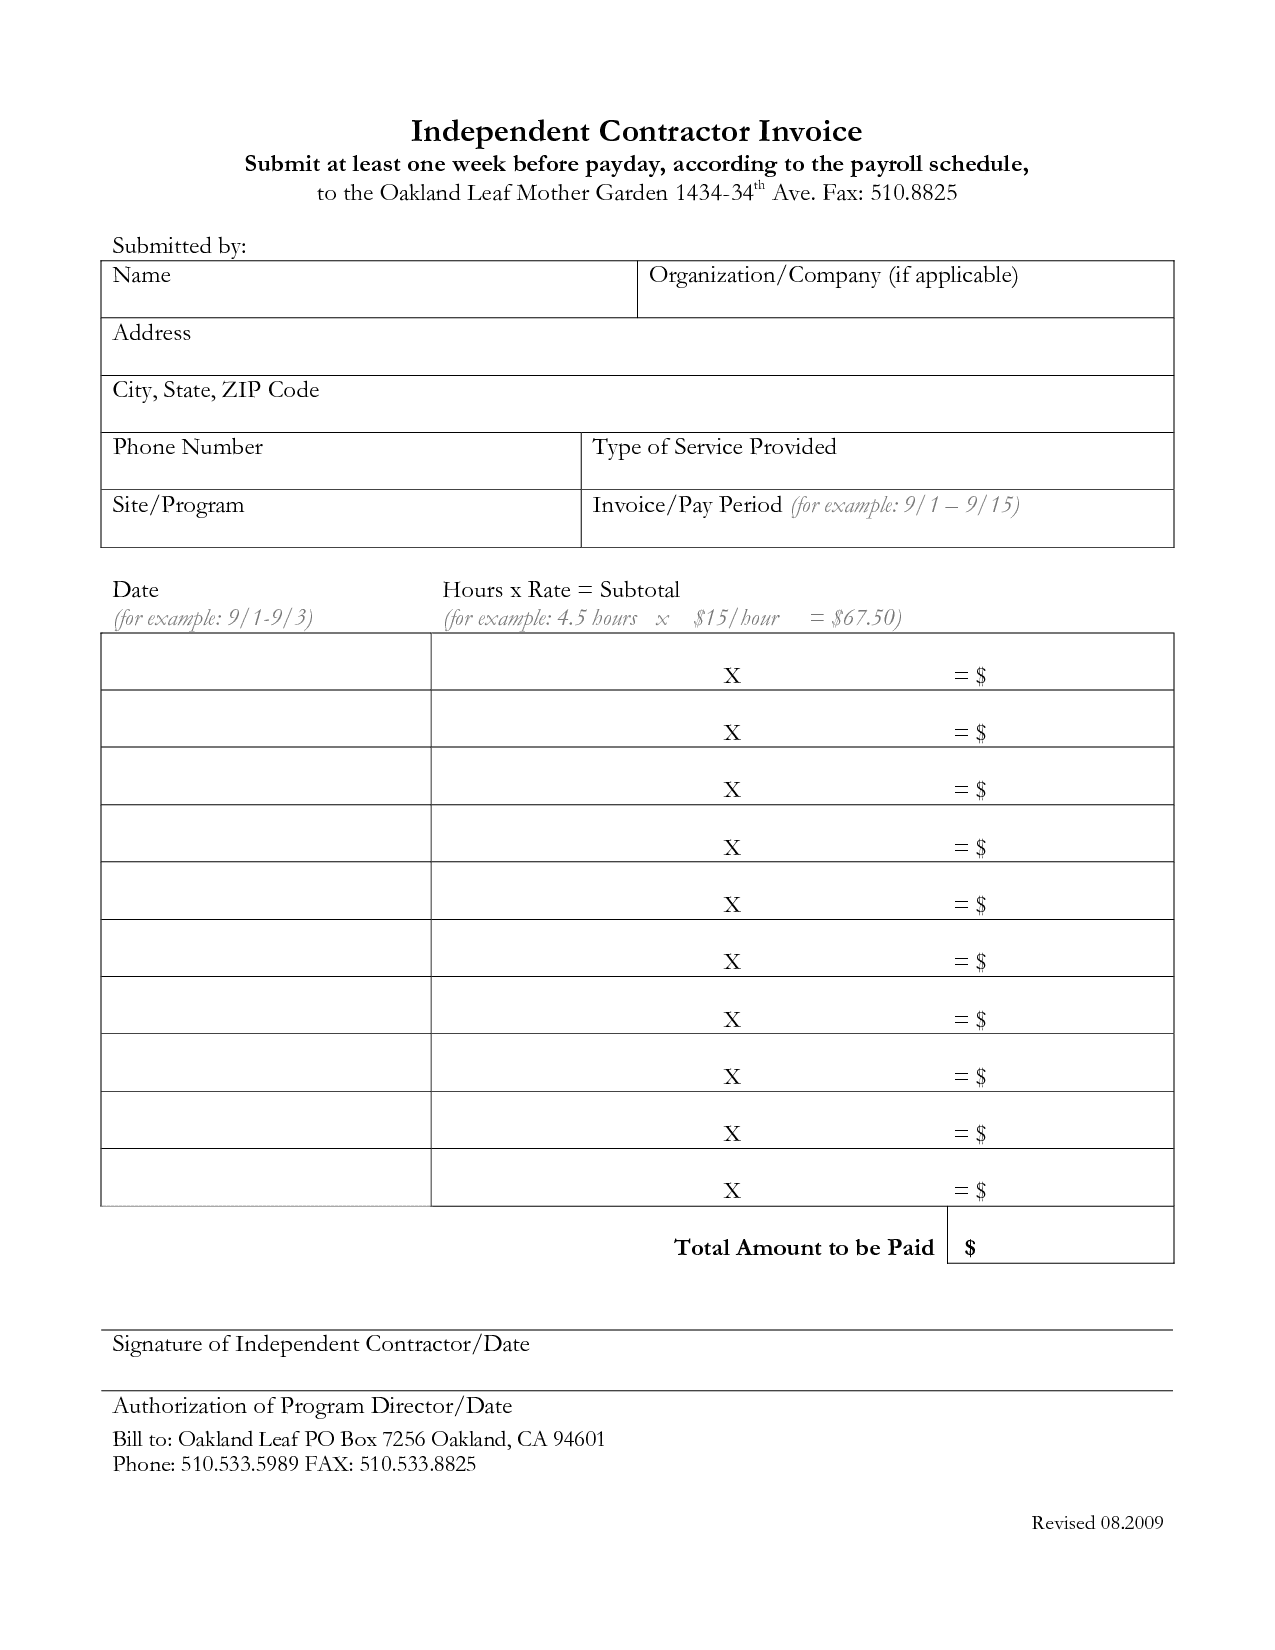 Independent Contractor Invoice Template Free And Contractor Invoice Template Free Pdf